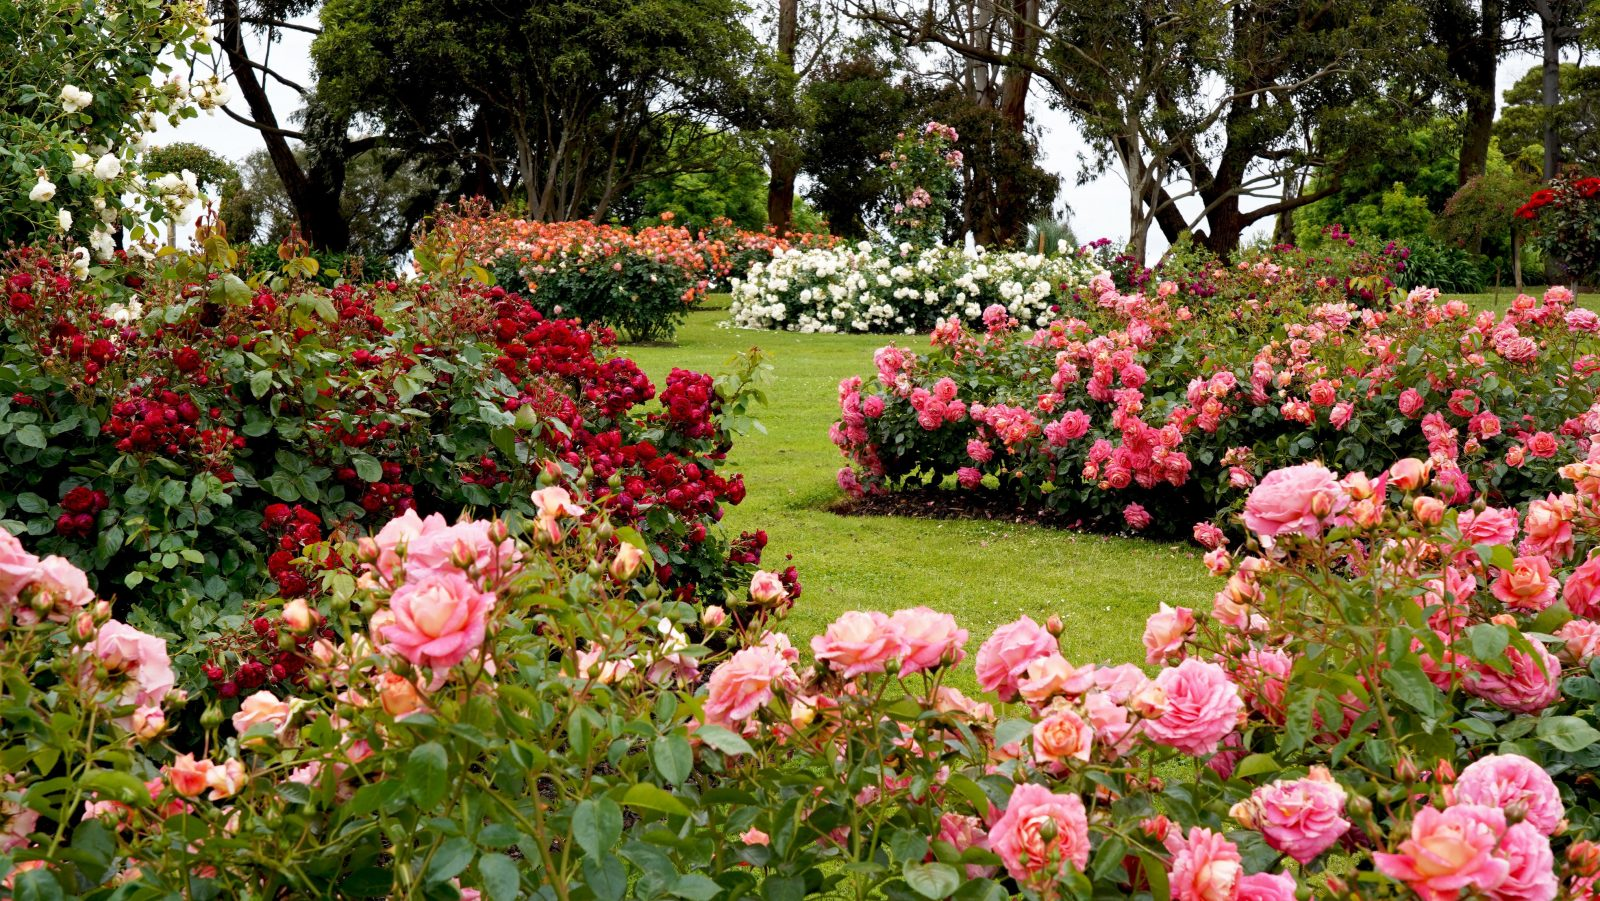 Winding garden beds of colourful roses